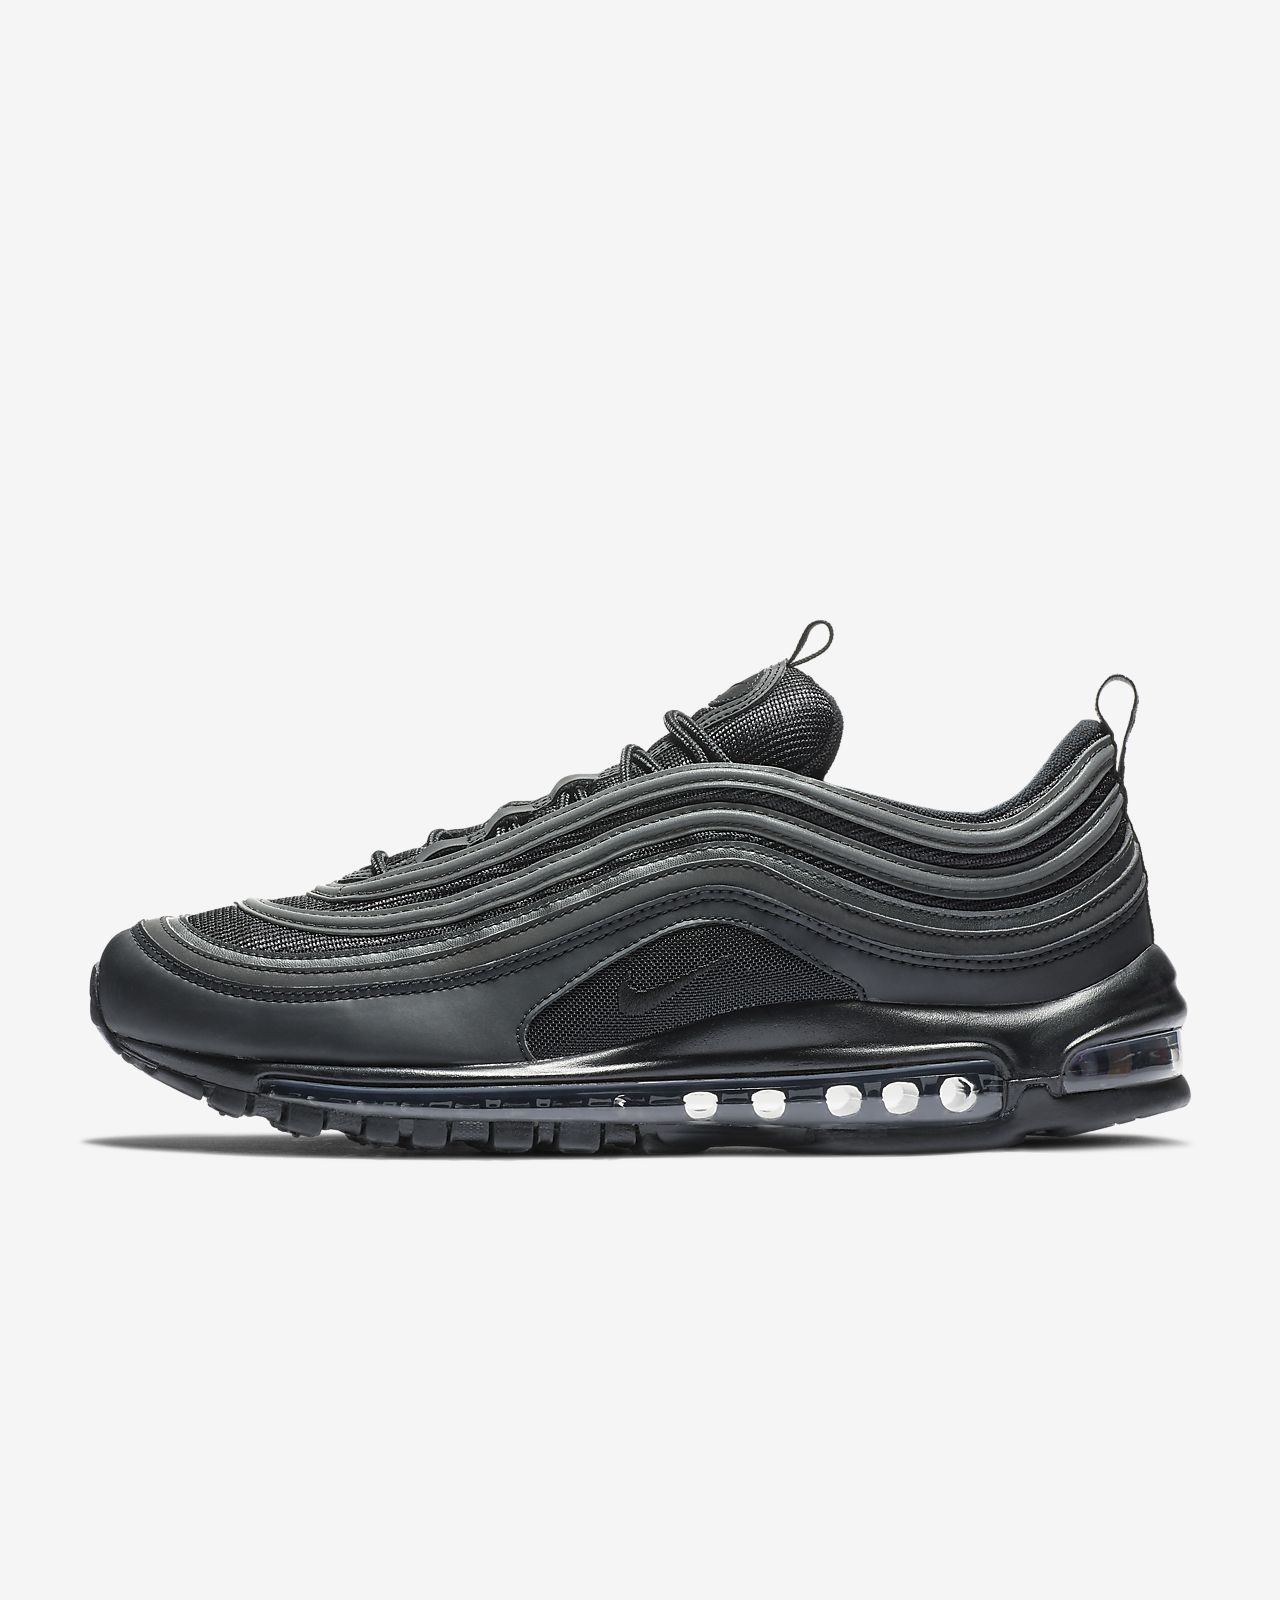 nike air max 97 ultra '17 dames schoenen€ 180